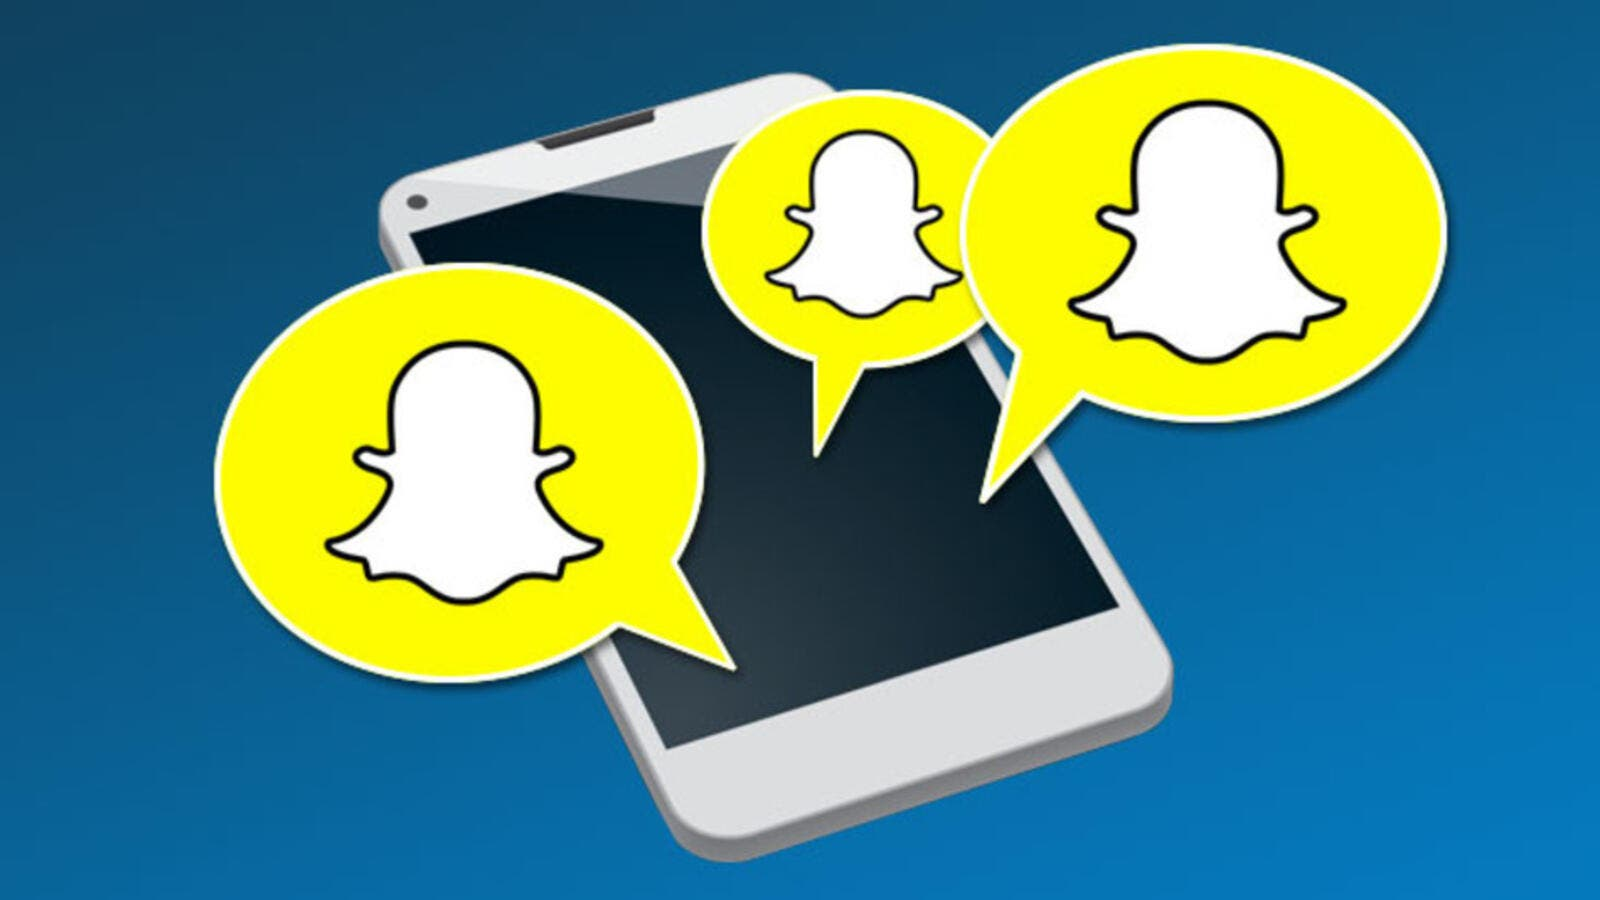 The new update allows the release of the geographical location of the Snapchat users and exposes it to all the app users worldwide, not just to their friends. (File photo)